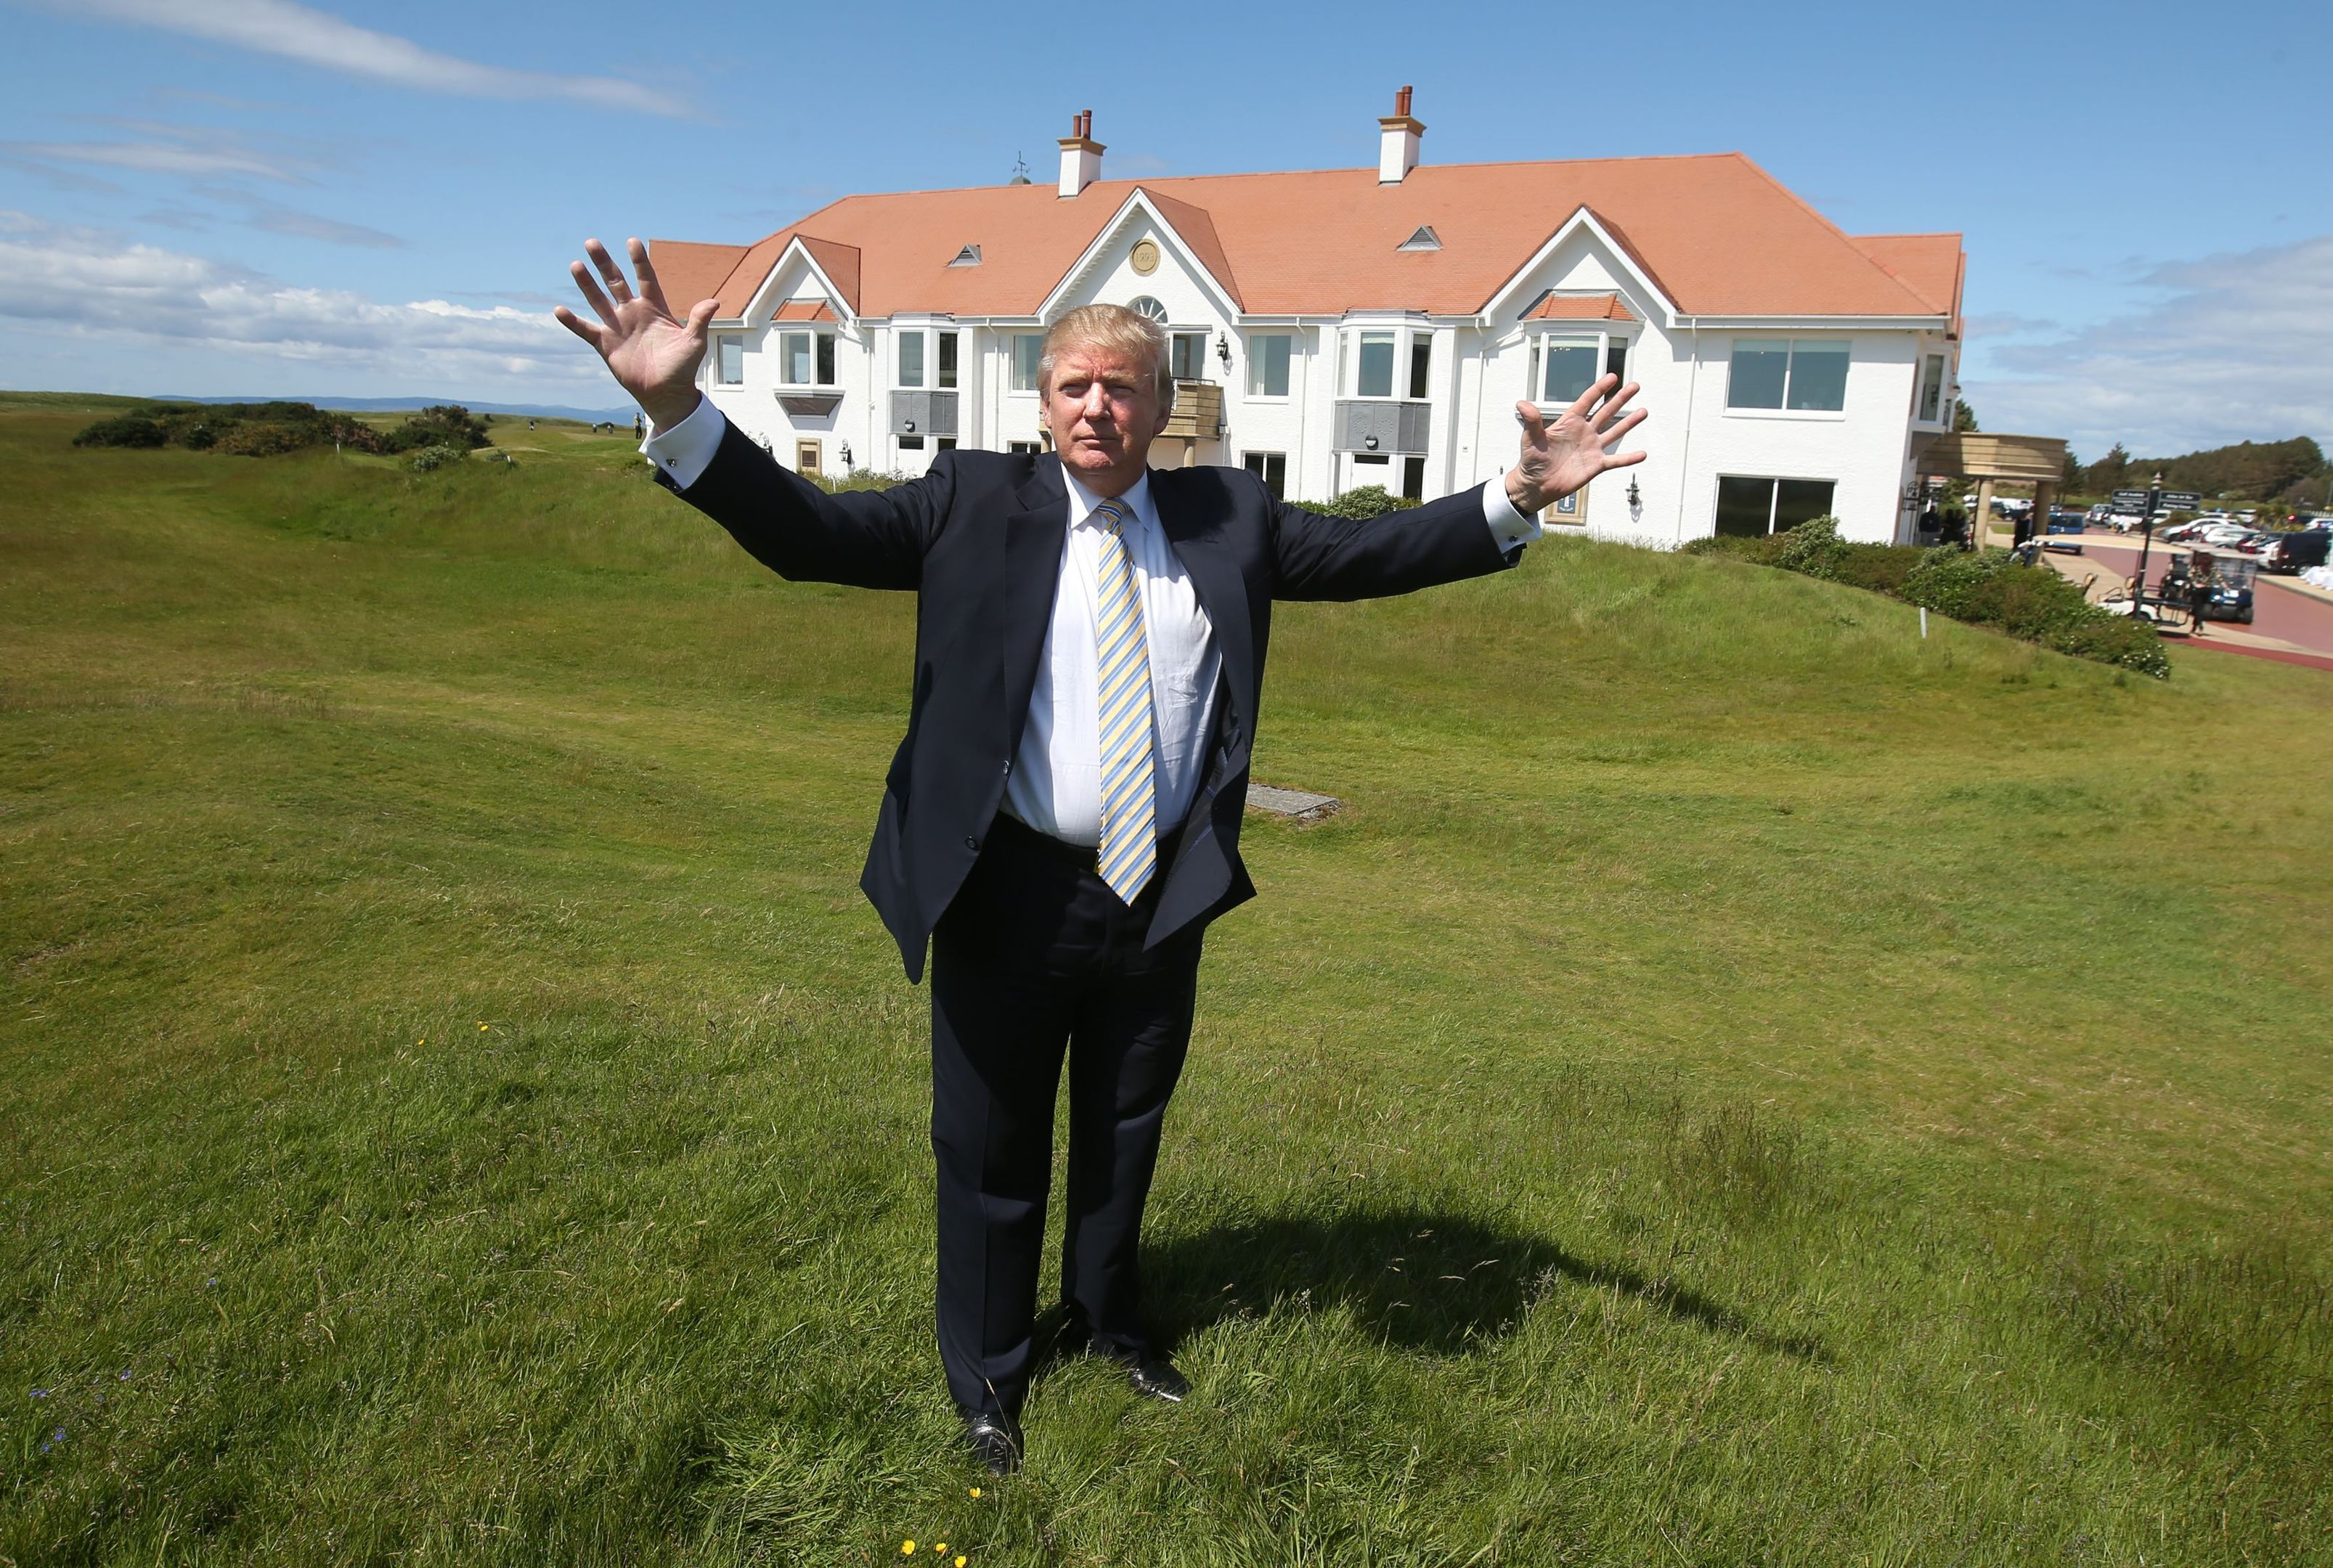 Donald Trump at Turnberry (Andrew Milligan / PA Wire)